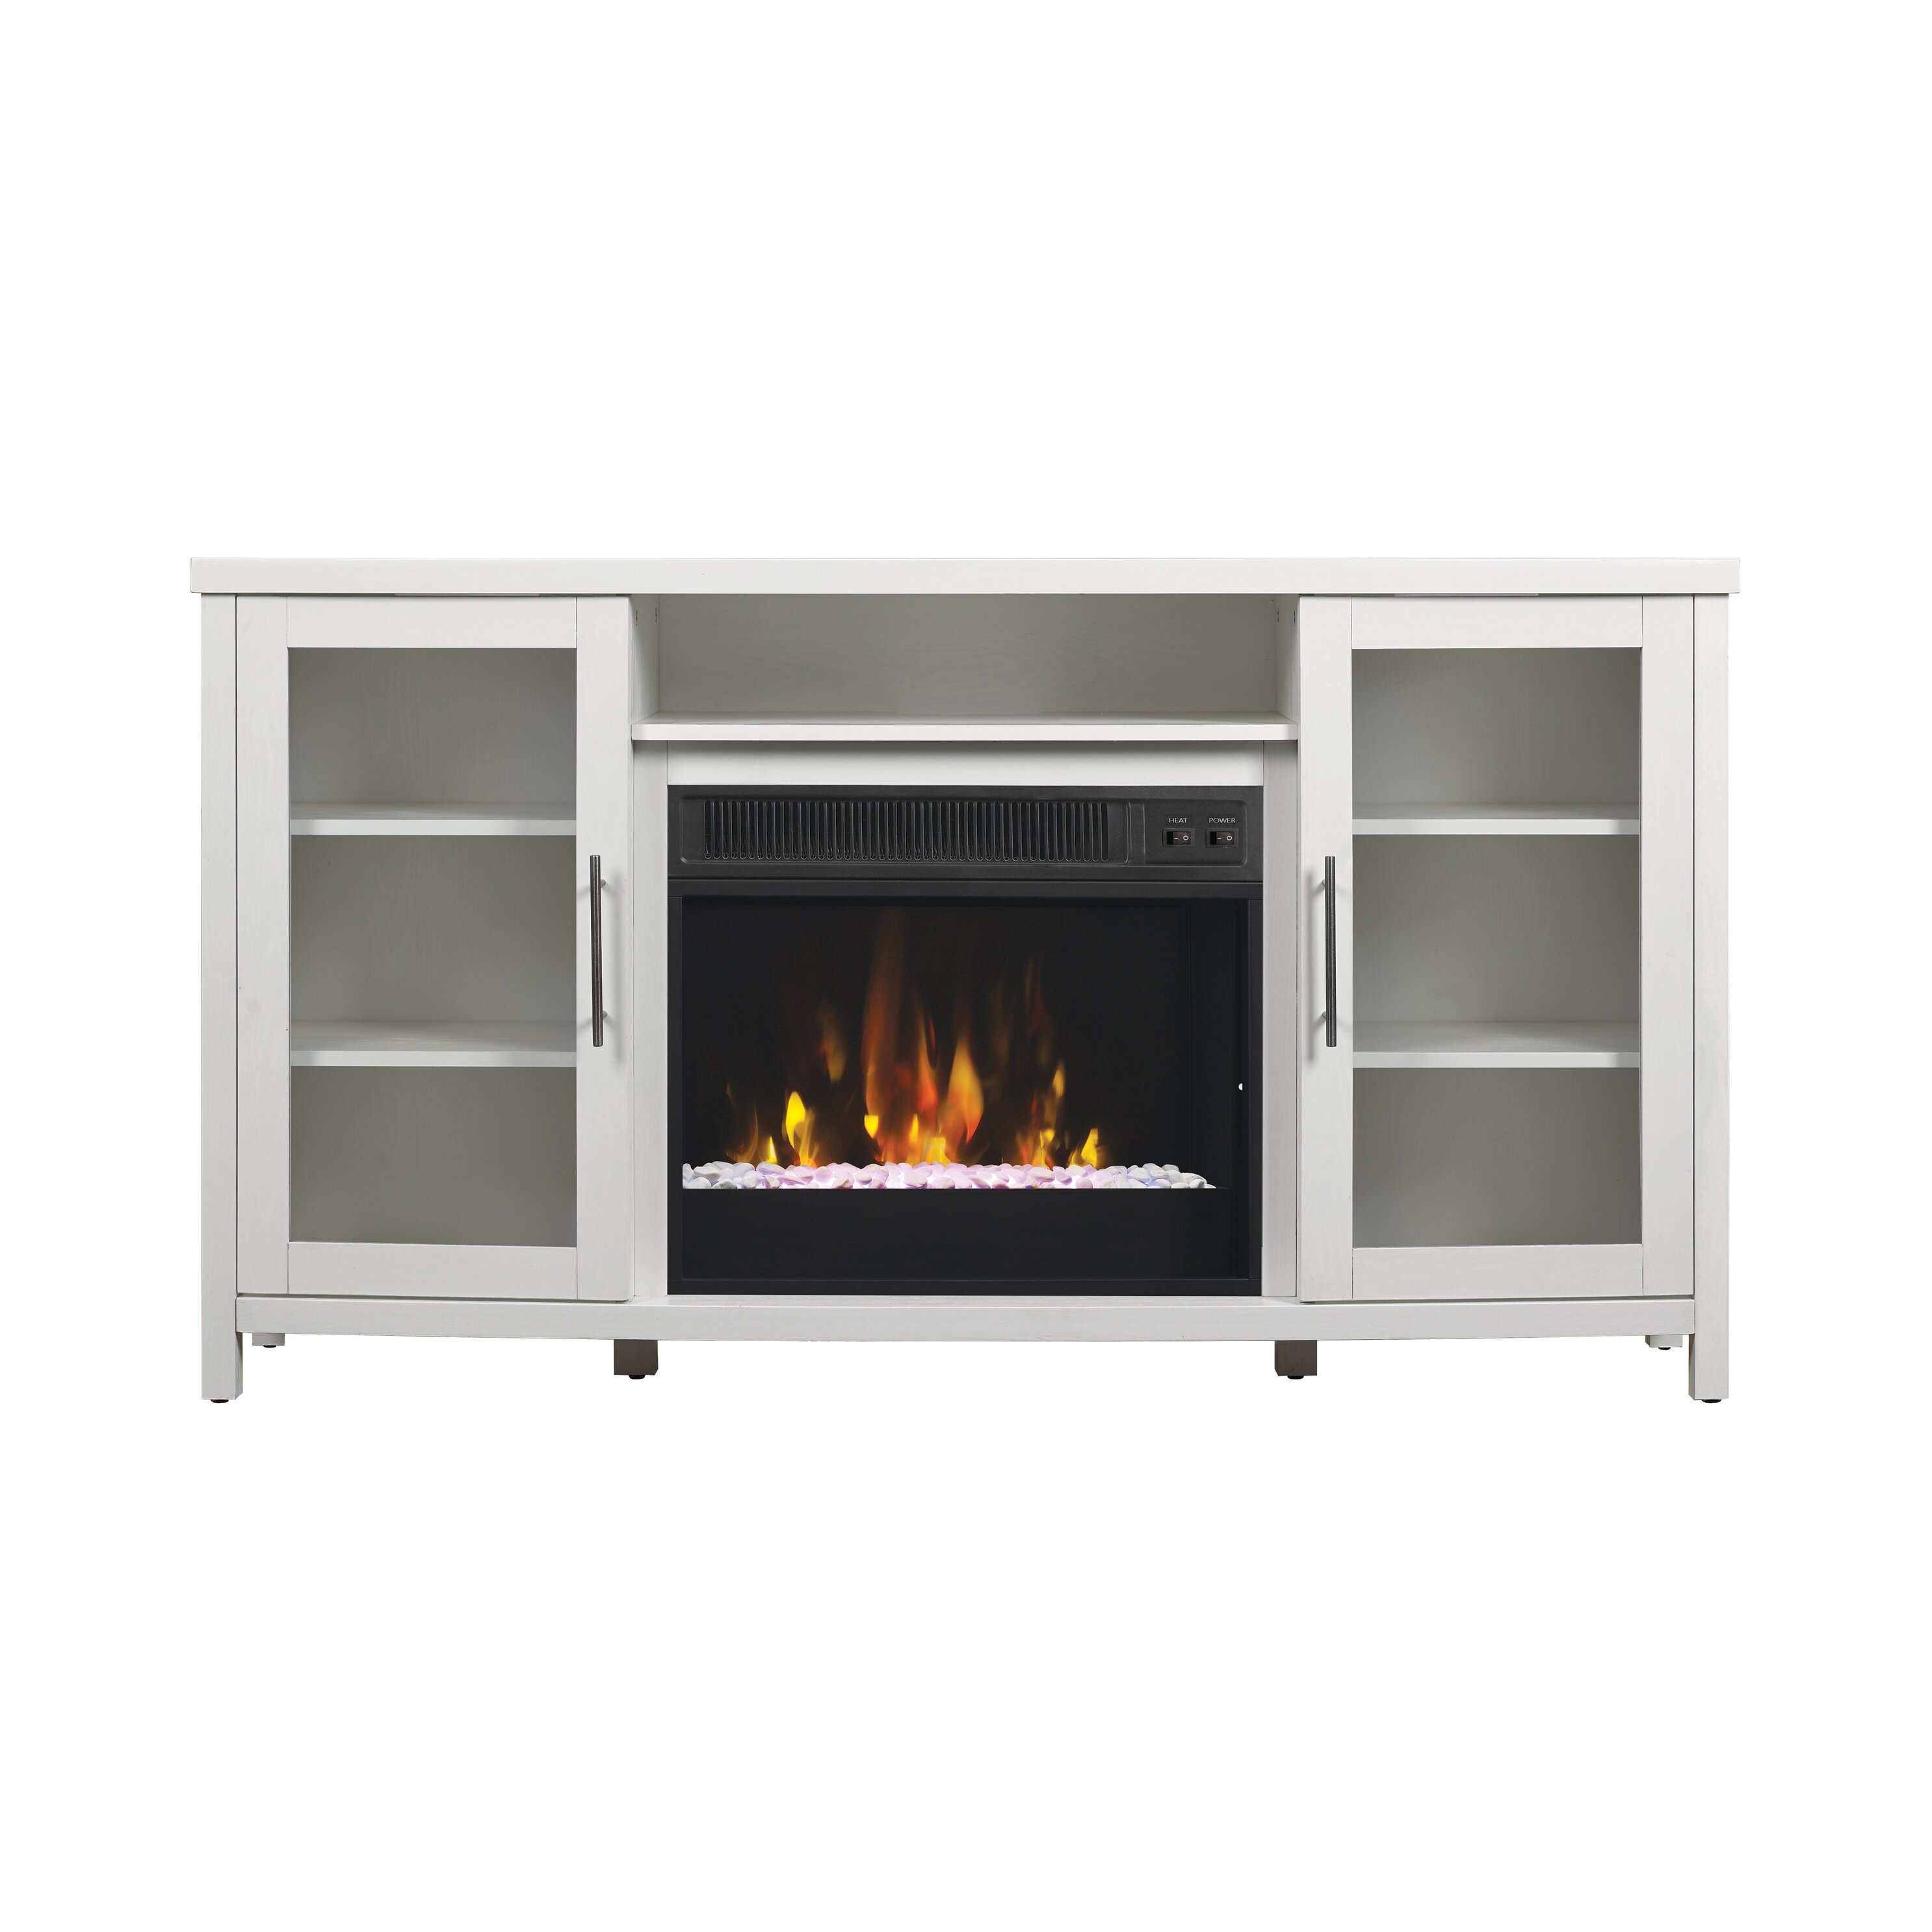 Fireplaces Tv Stands Junsaus Tv Fireplace Stand ~ dact.us